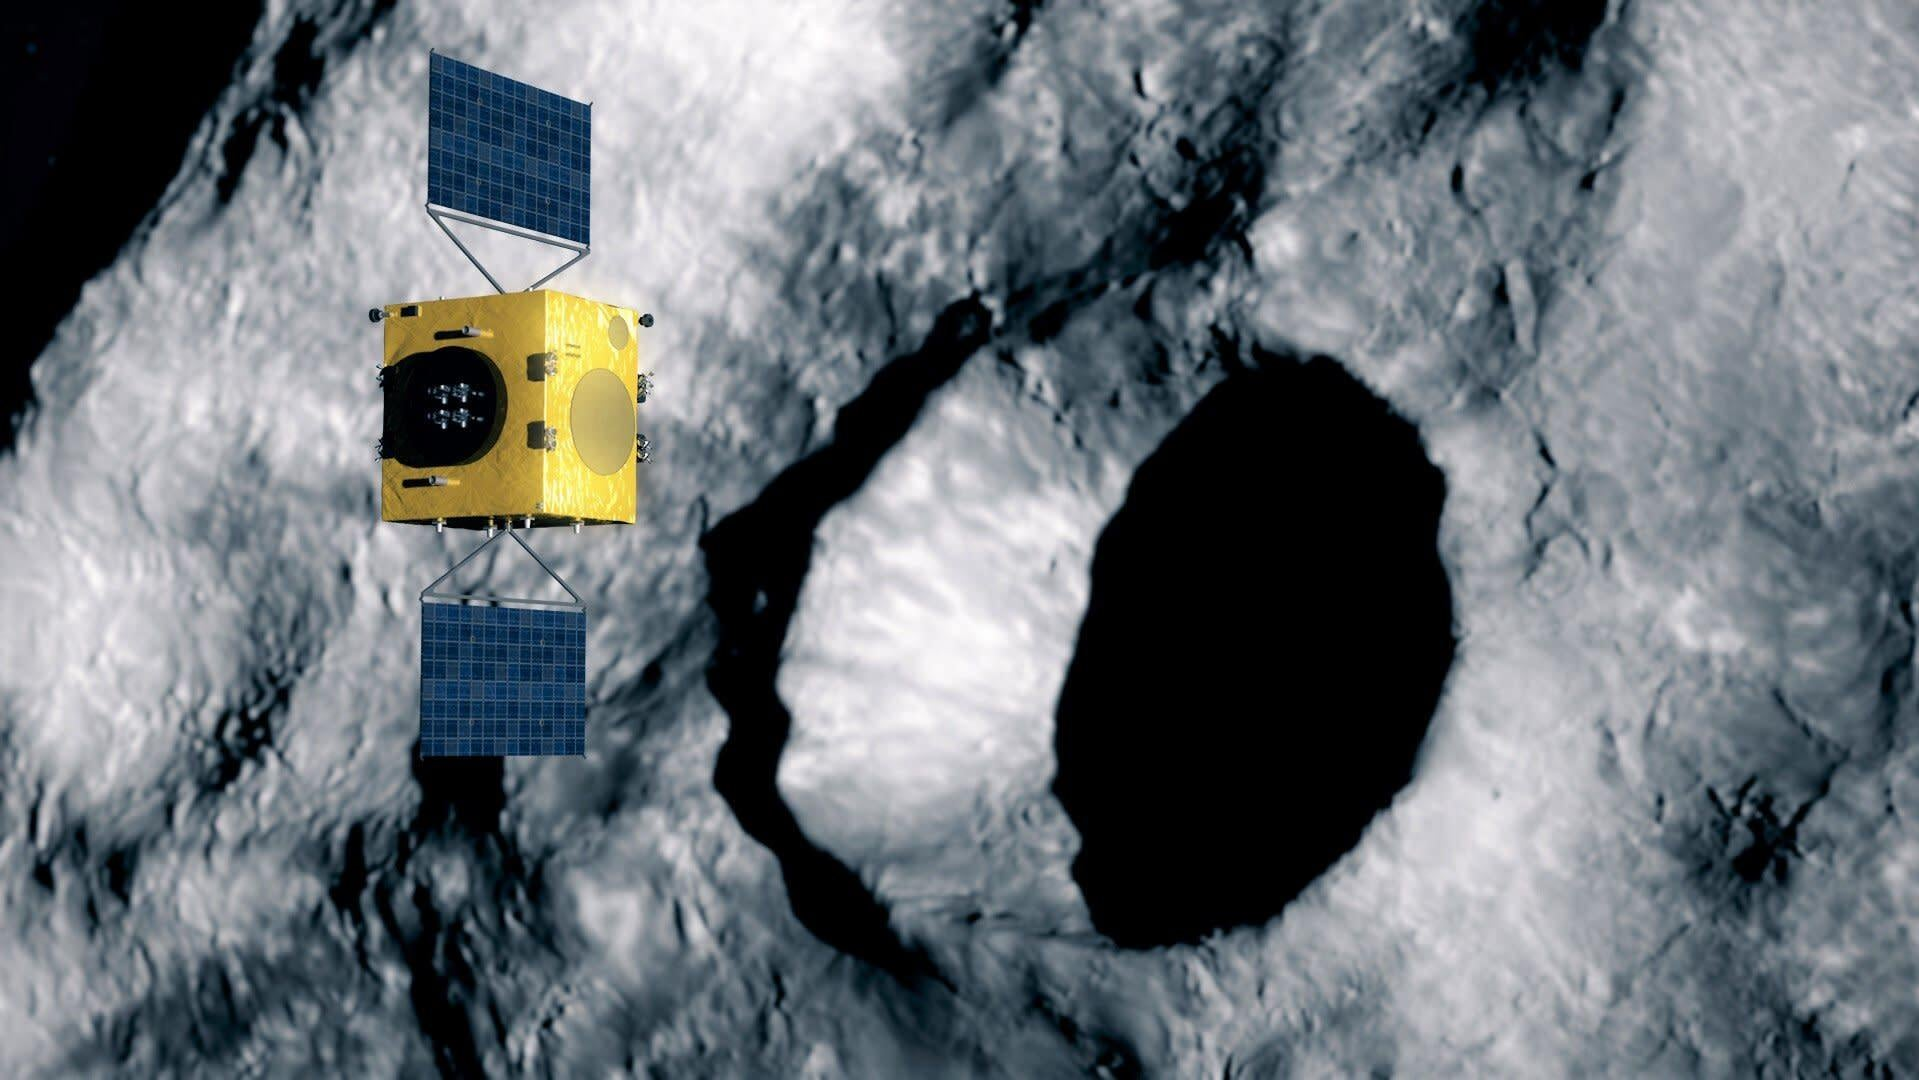 Mission To Study Asteroid-Spacecraft Collision Gets Official Go-Ahead In Europe